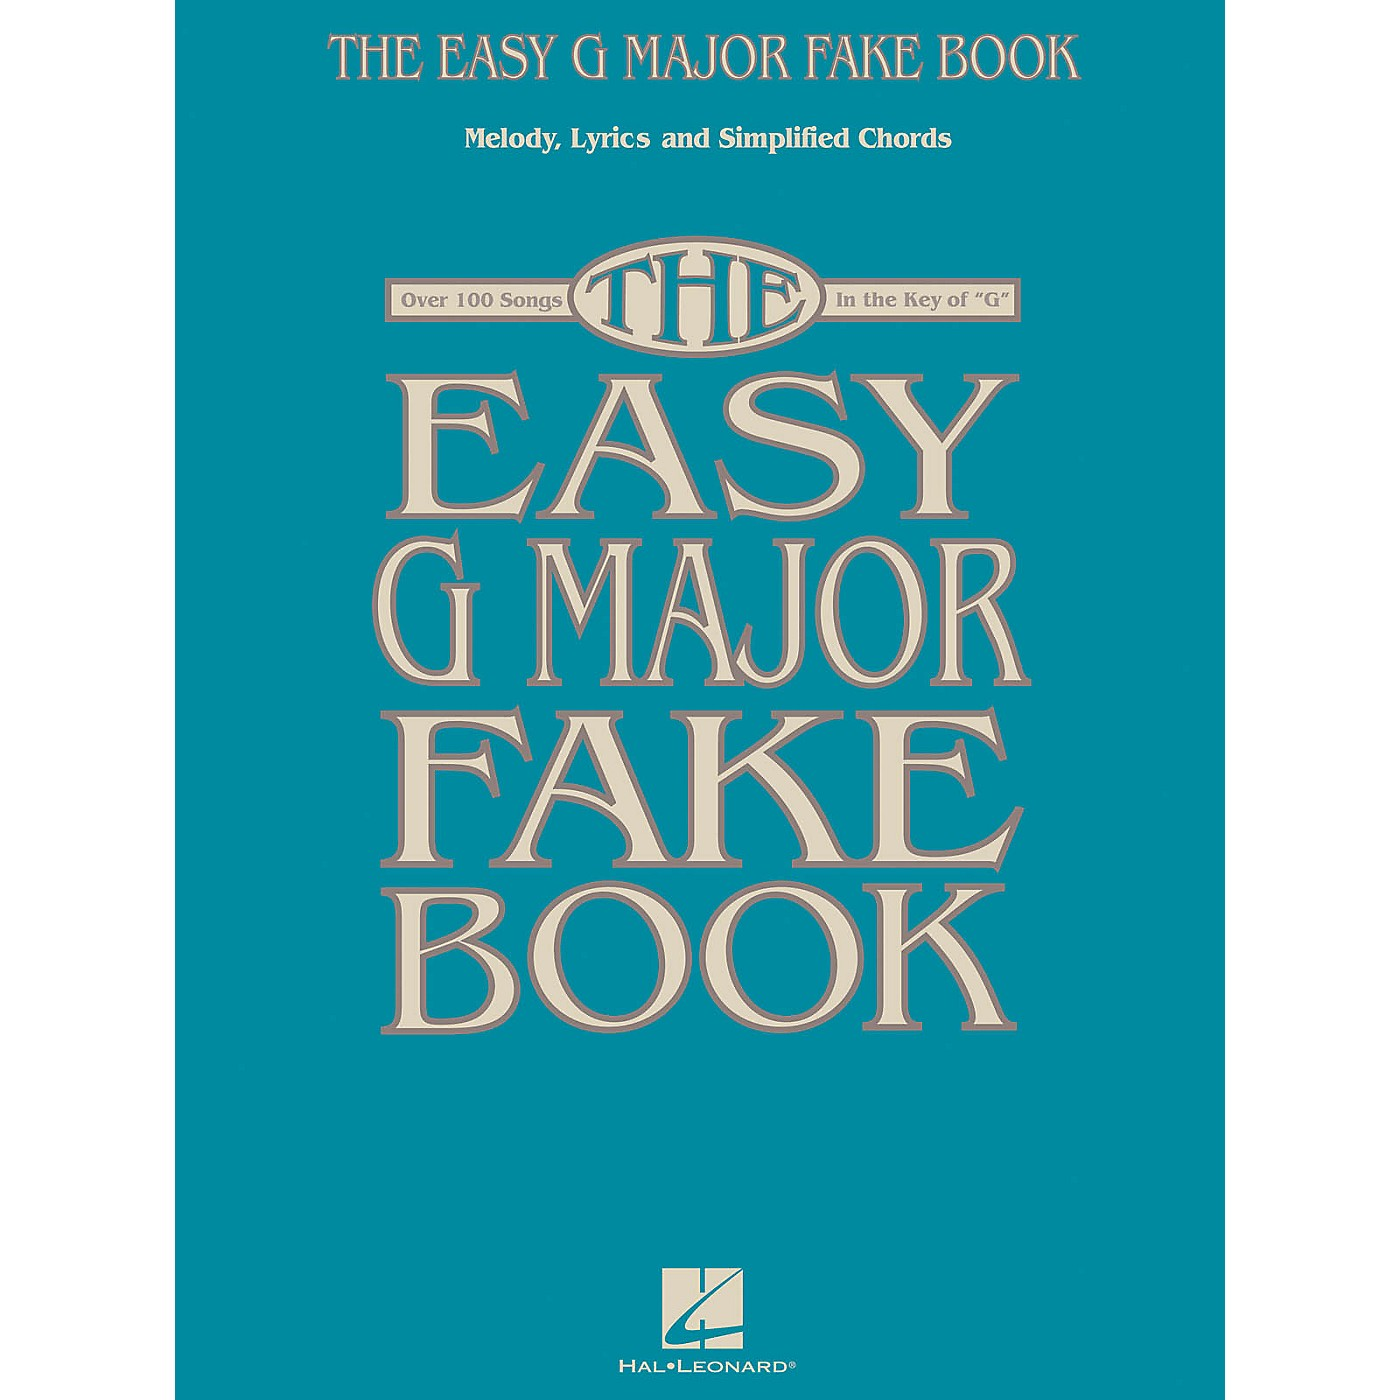 Hal Leonard The Easy G Major Fake Book Easy Fake Book Series Softcover thumbnail